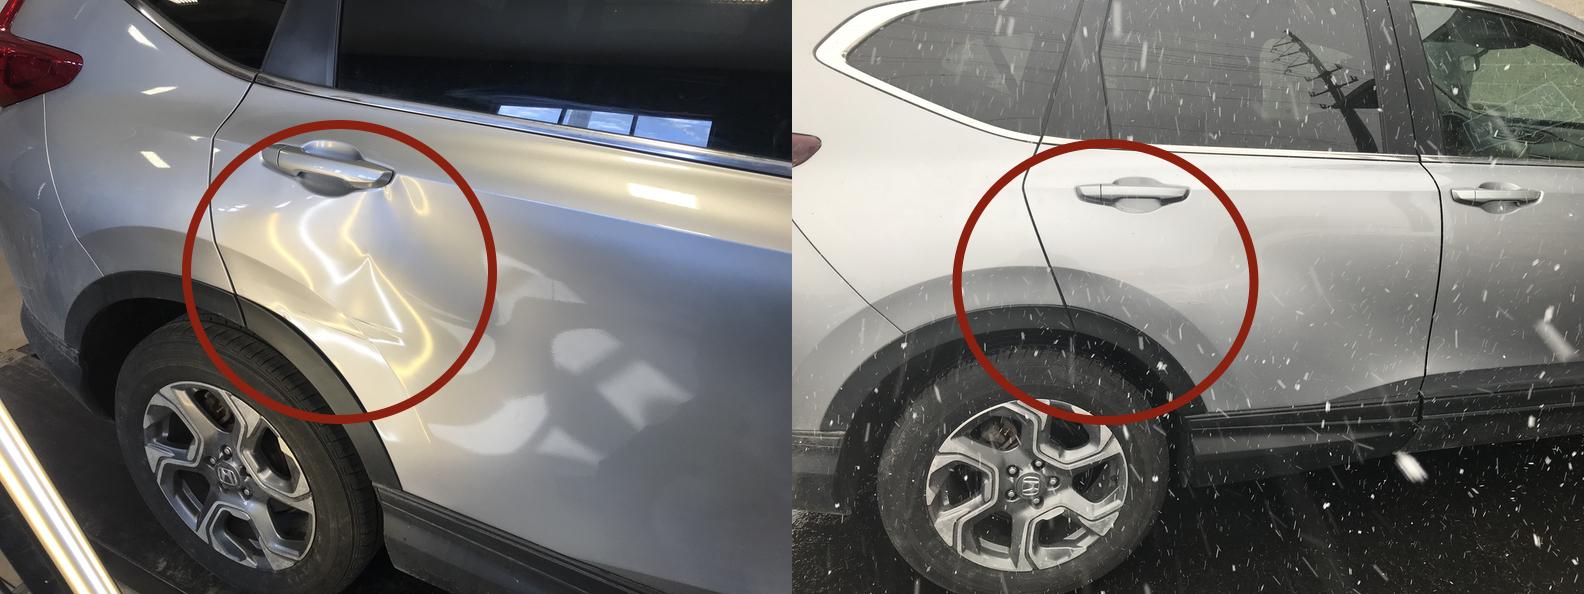 BEFORE & AFTER: EXTREMELY LARGE DENTS IN REAR DOOR; DAMAGE REMOVED & REPAIRED WITH PDR BY THE DENT GUY